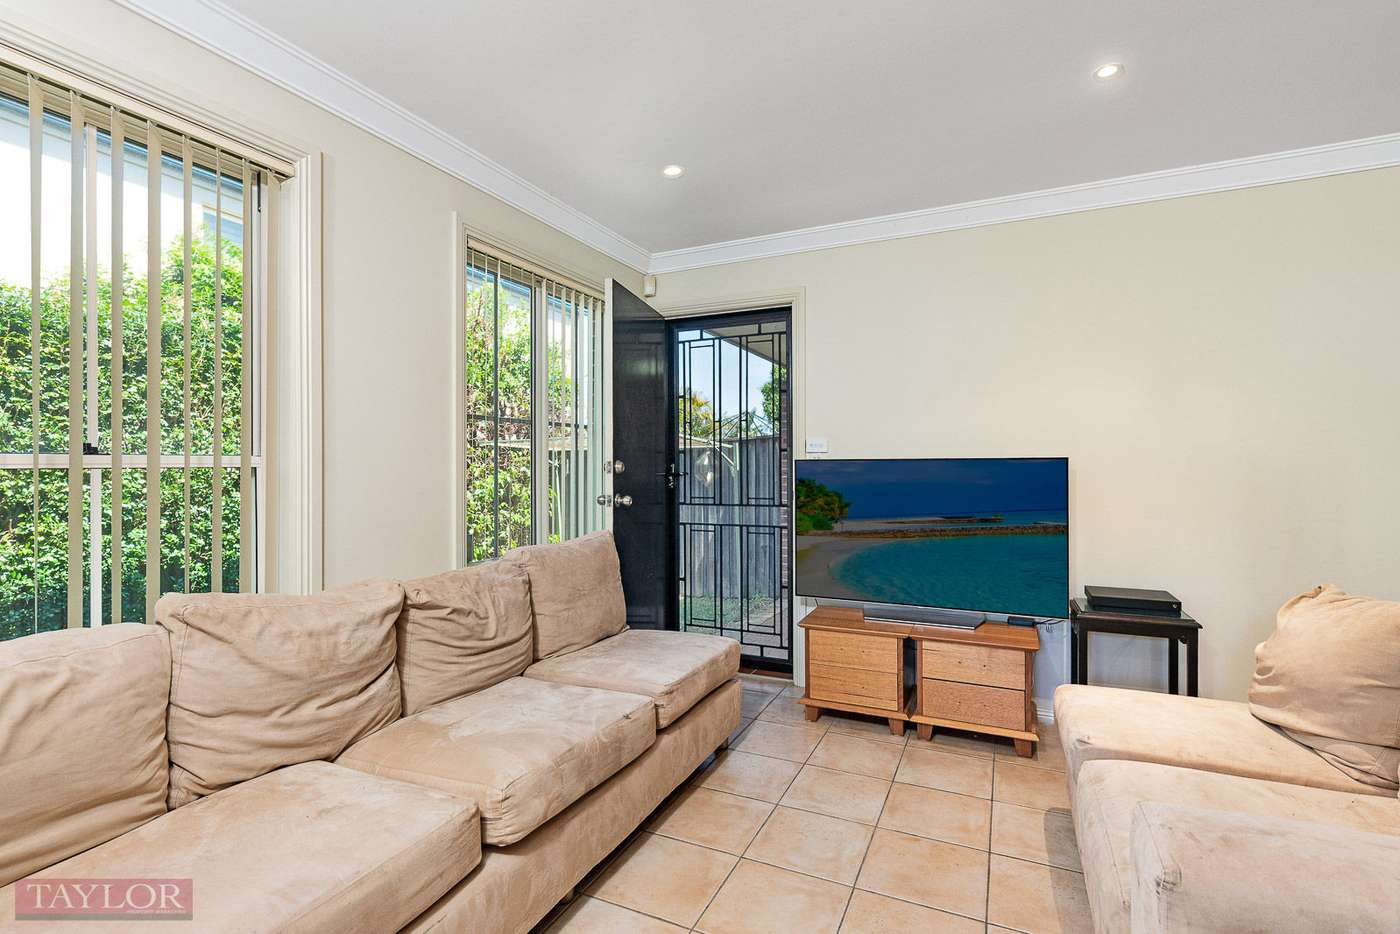 Fifth view of Homely townhouse listing, 2 The Mews, Oatlands NSW 2117